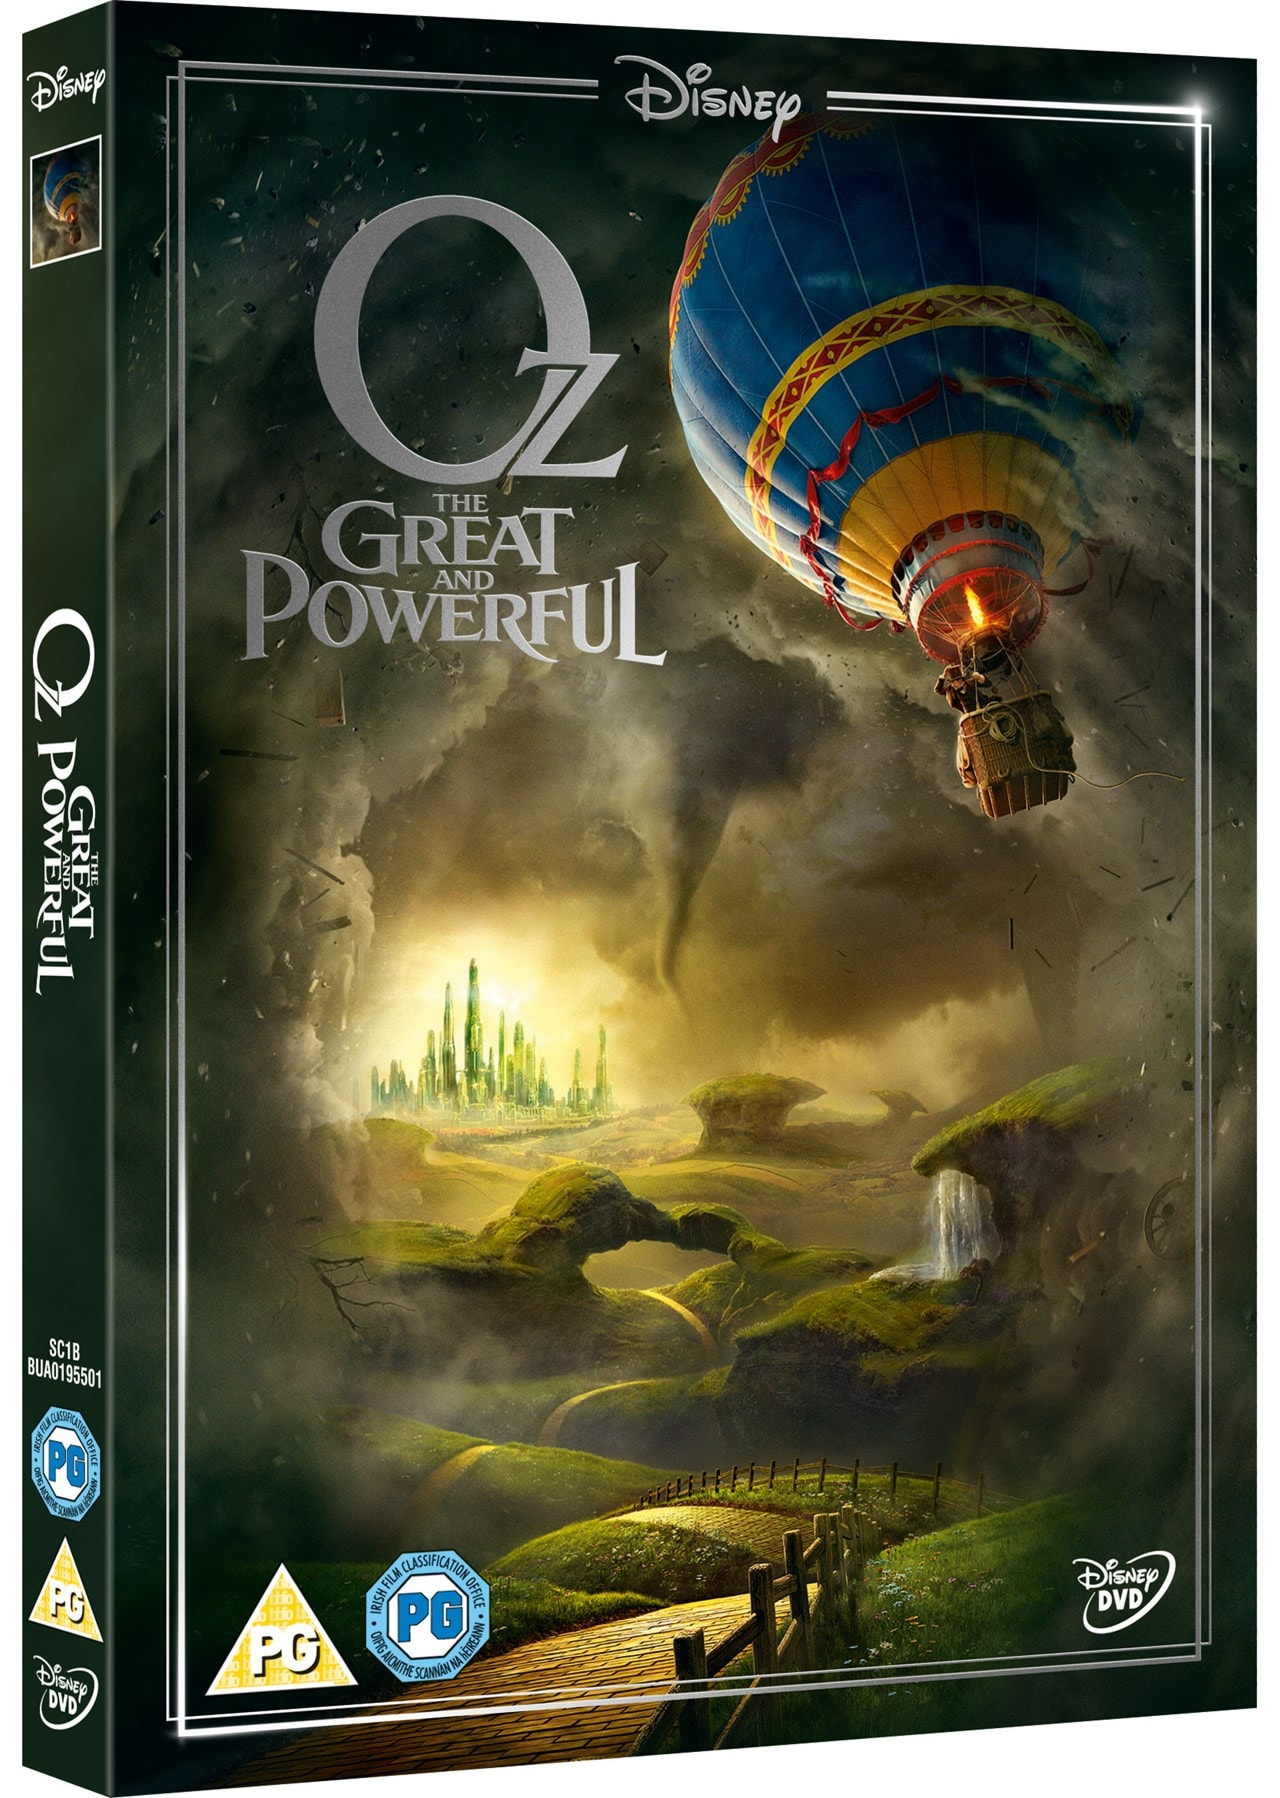 Oz - The Great and Powerful - 2